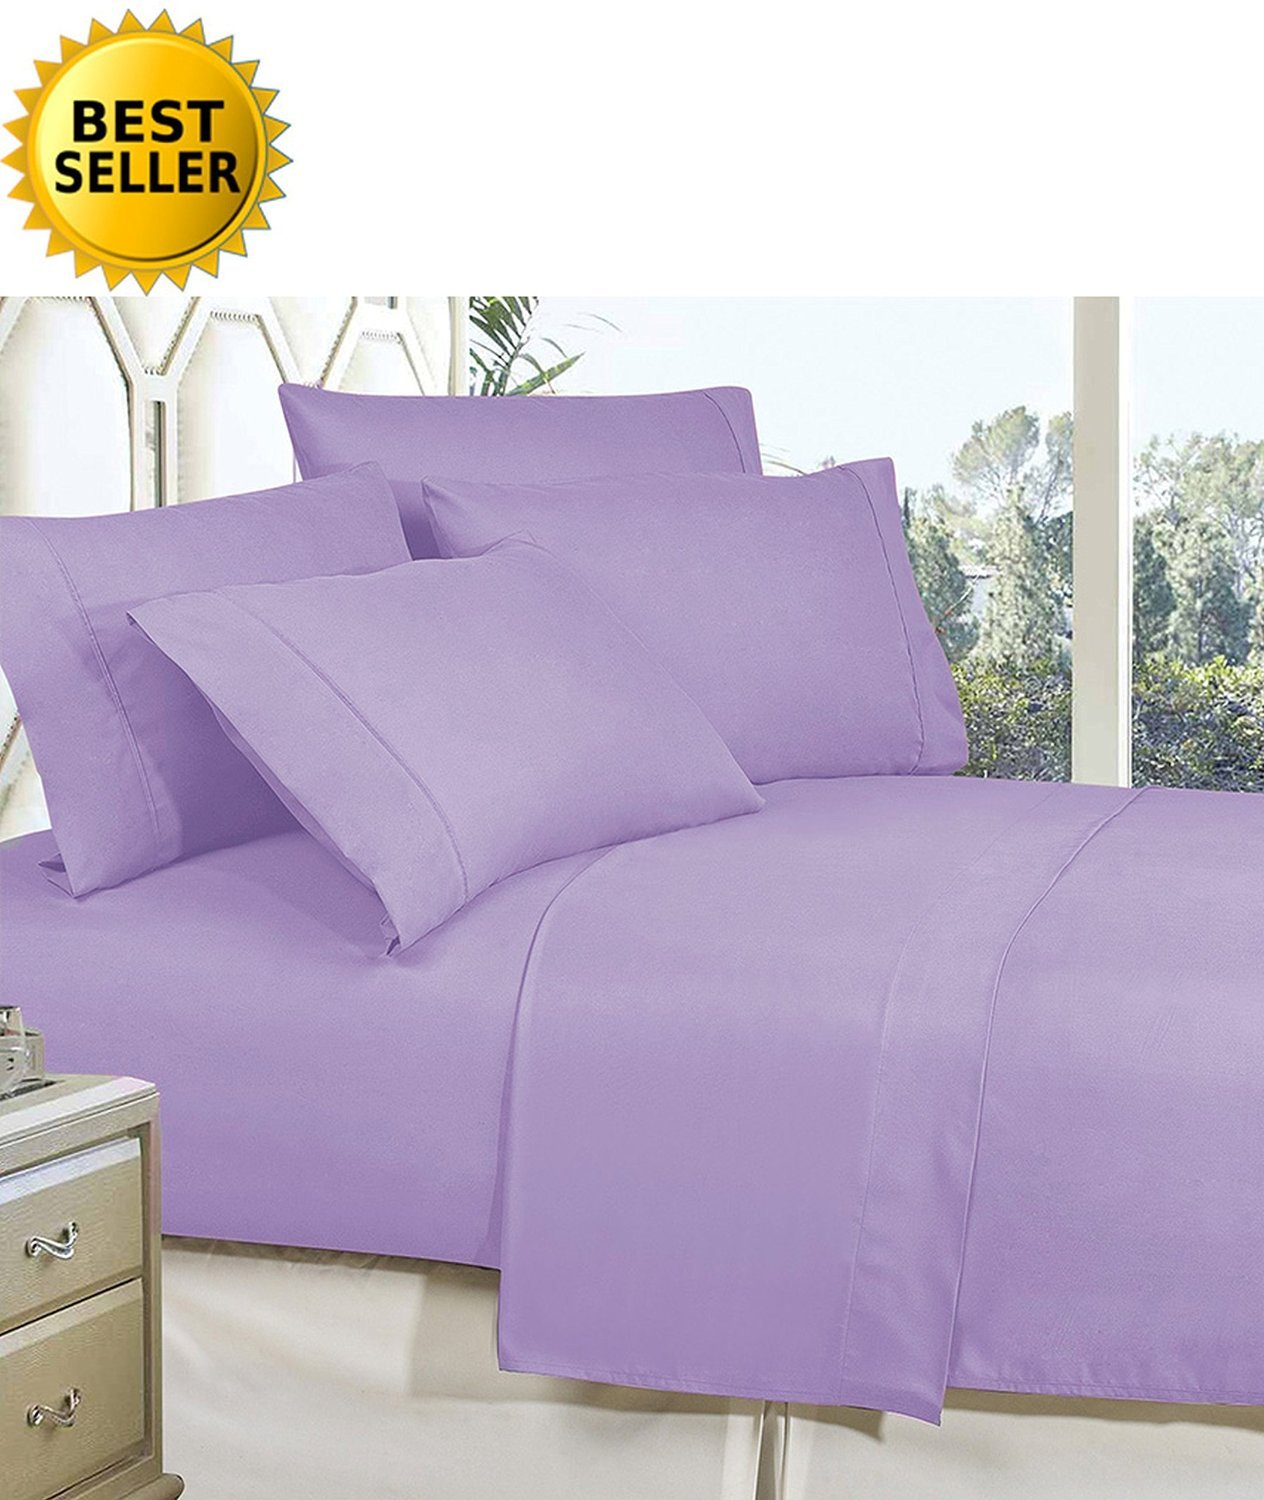 Quality Super Soft Fade Resistant 4-Piece Bed Sheet Set, Deep Pocket, Full Lavender